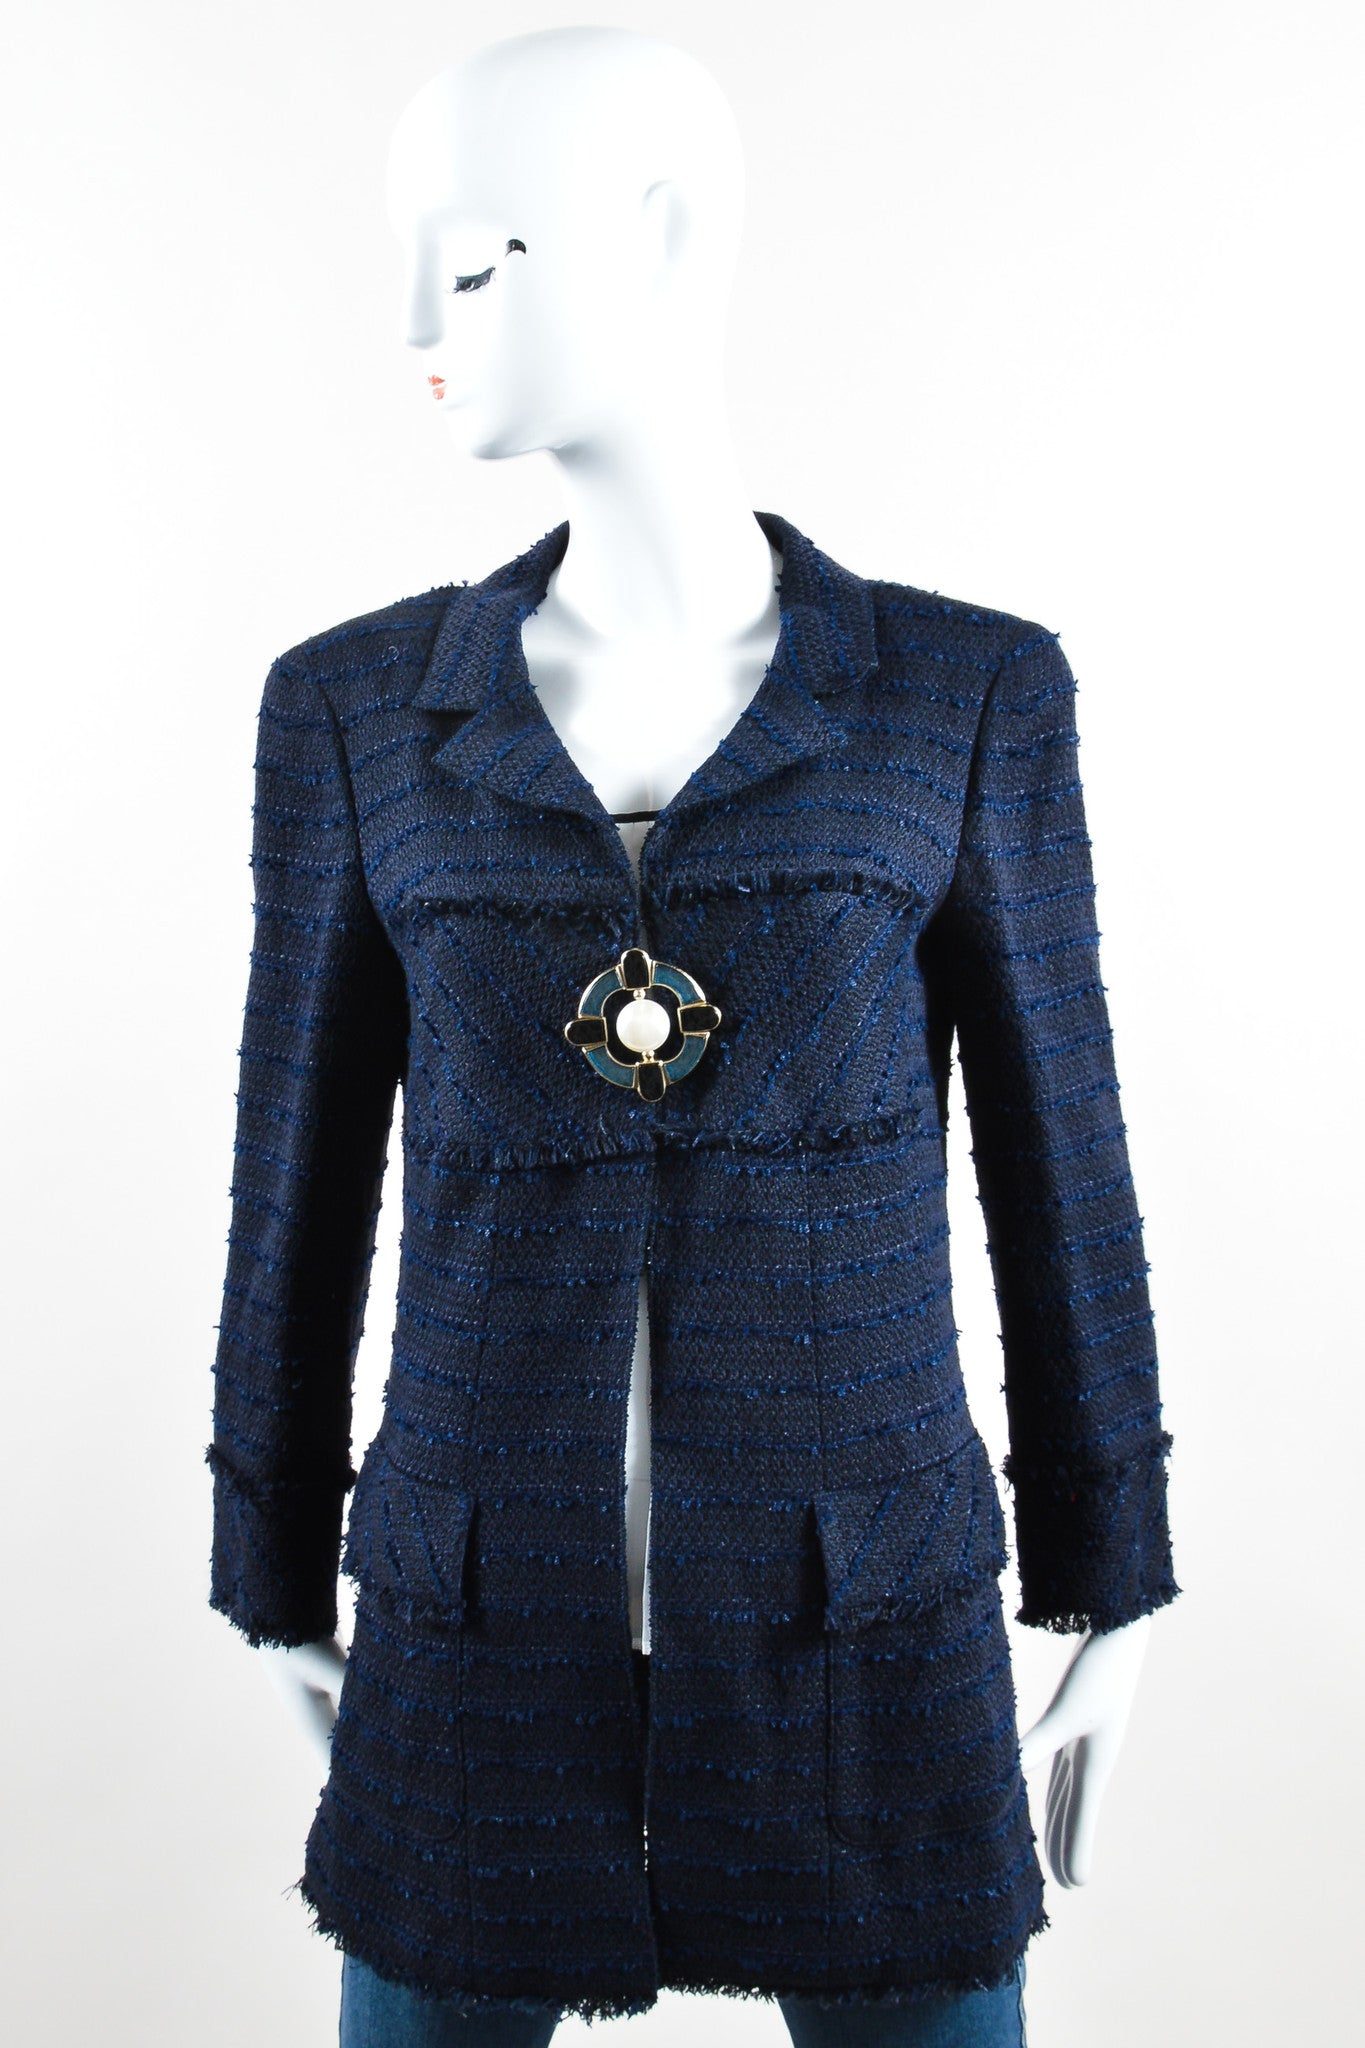 Chanel Navy Cotton and Linen Tweed Faux Pearl Button Skirt Suit Jacket